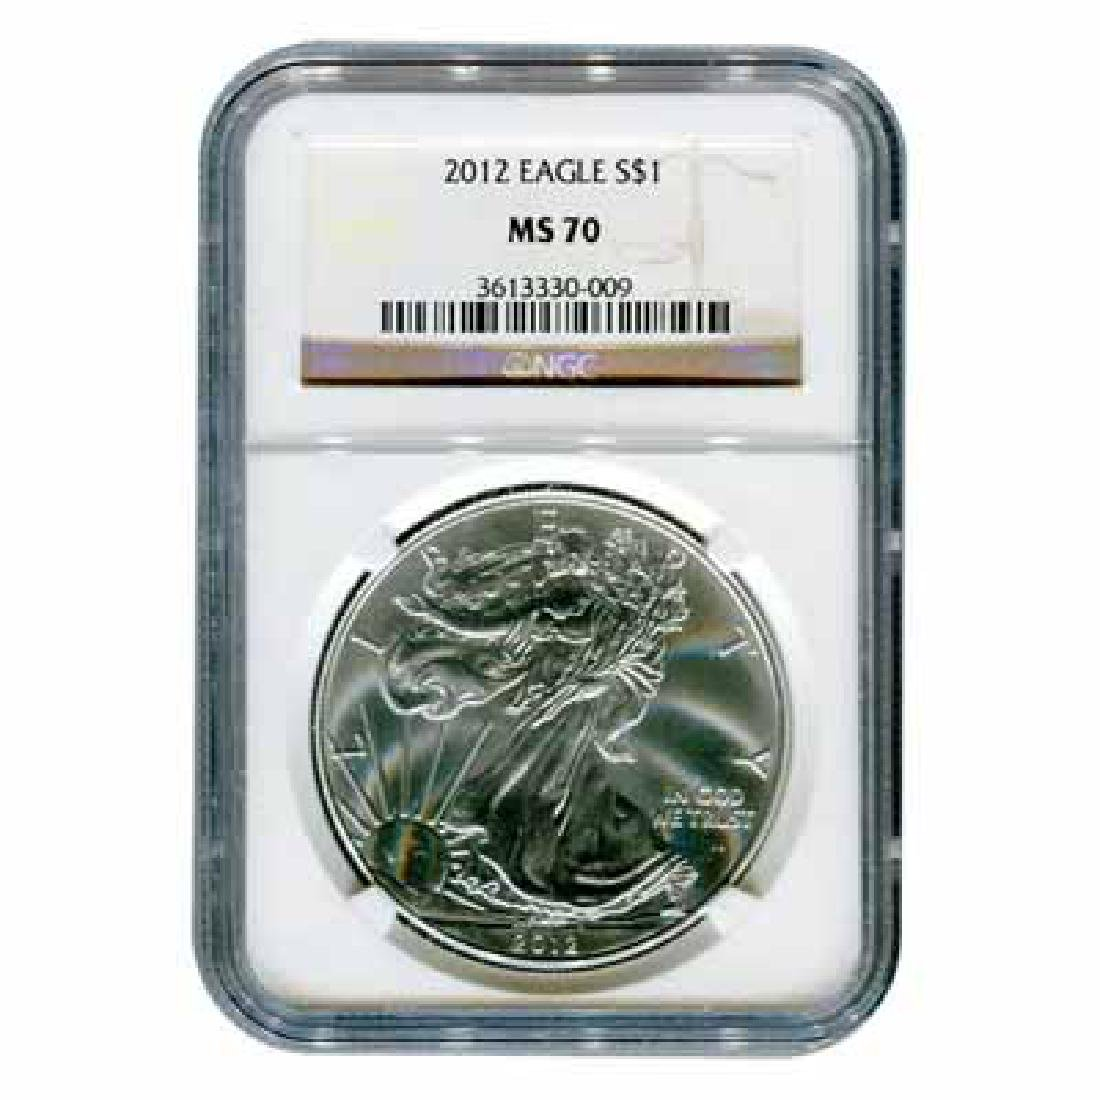 Certified Uncirculated Silver Eagle 2012 MS70